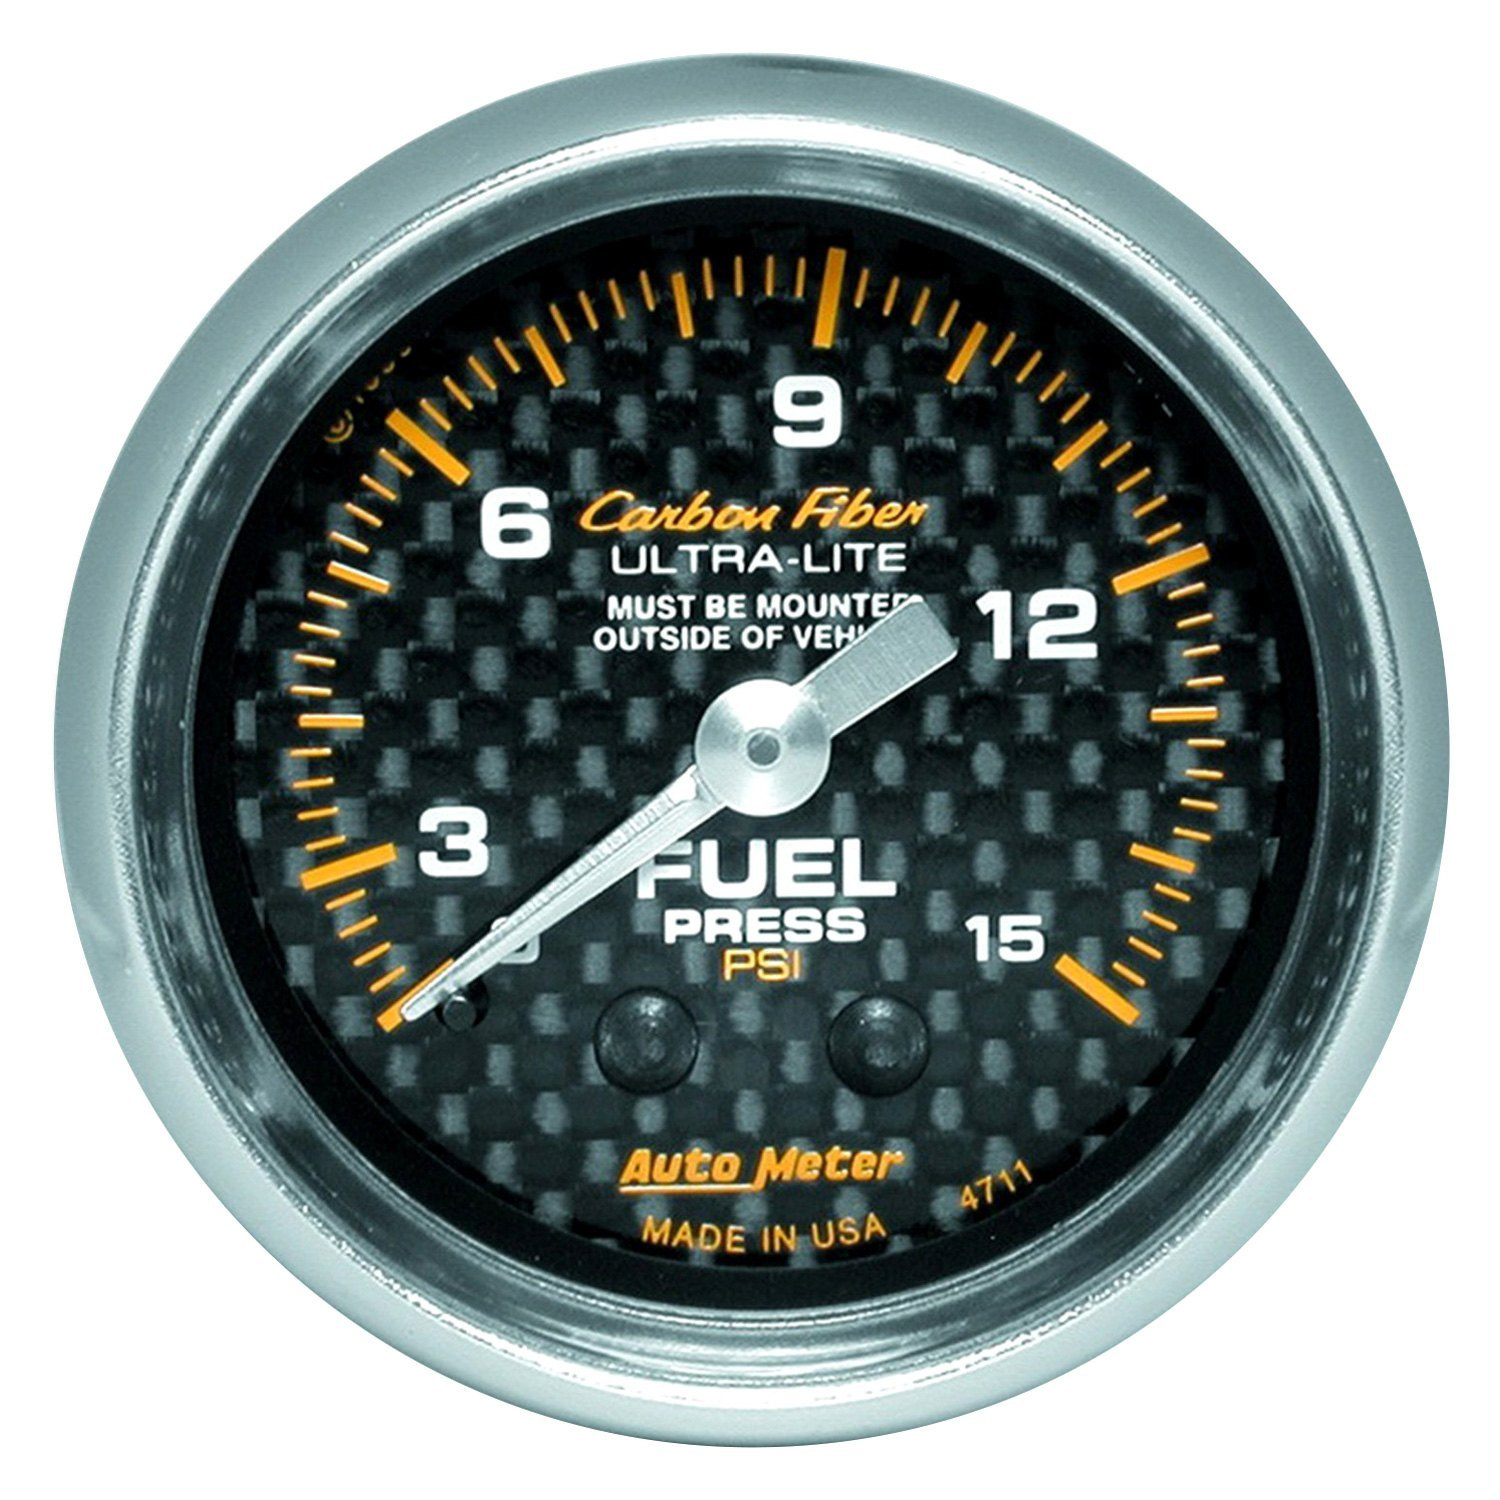 Auto Meter Fuel Gauge Automotive